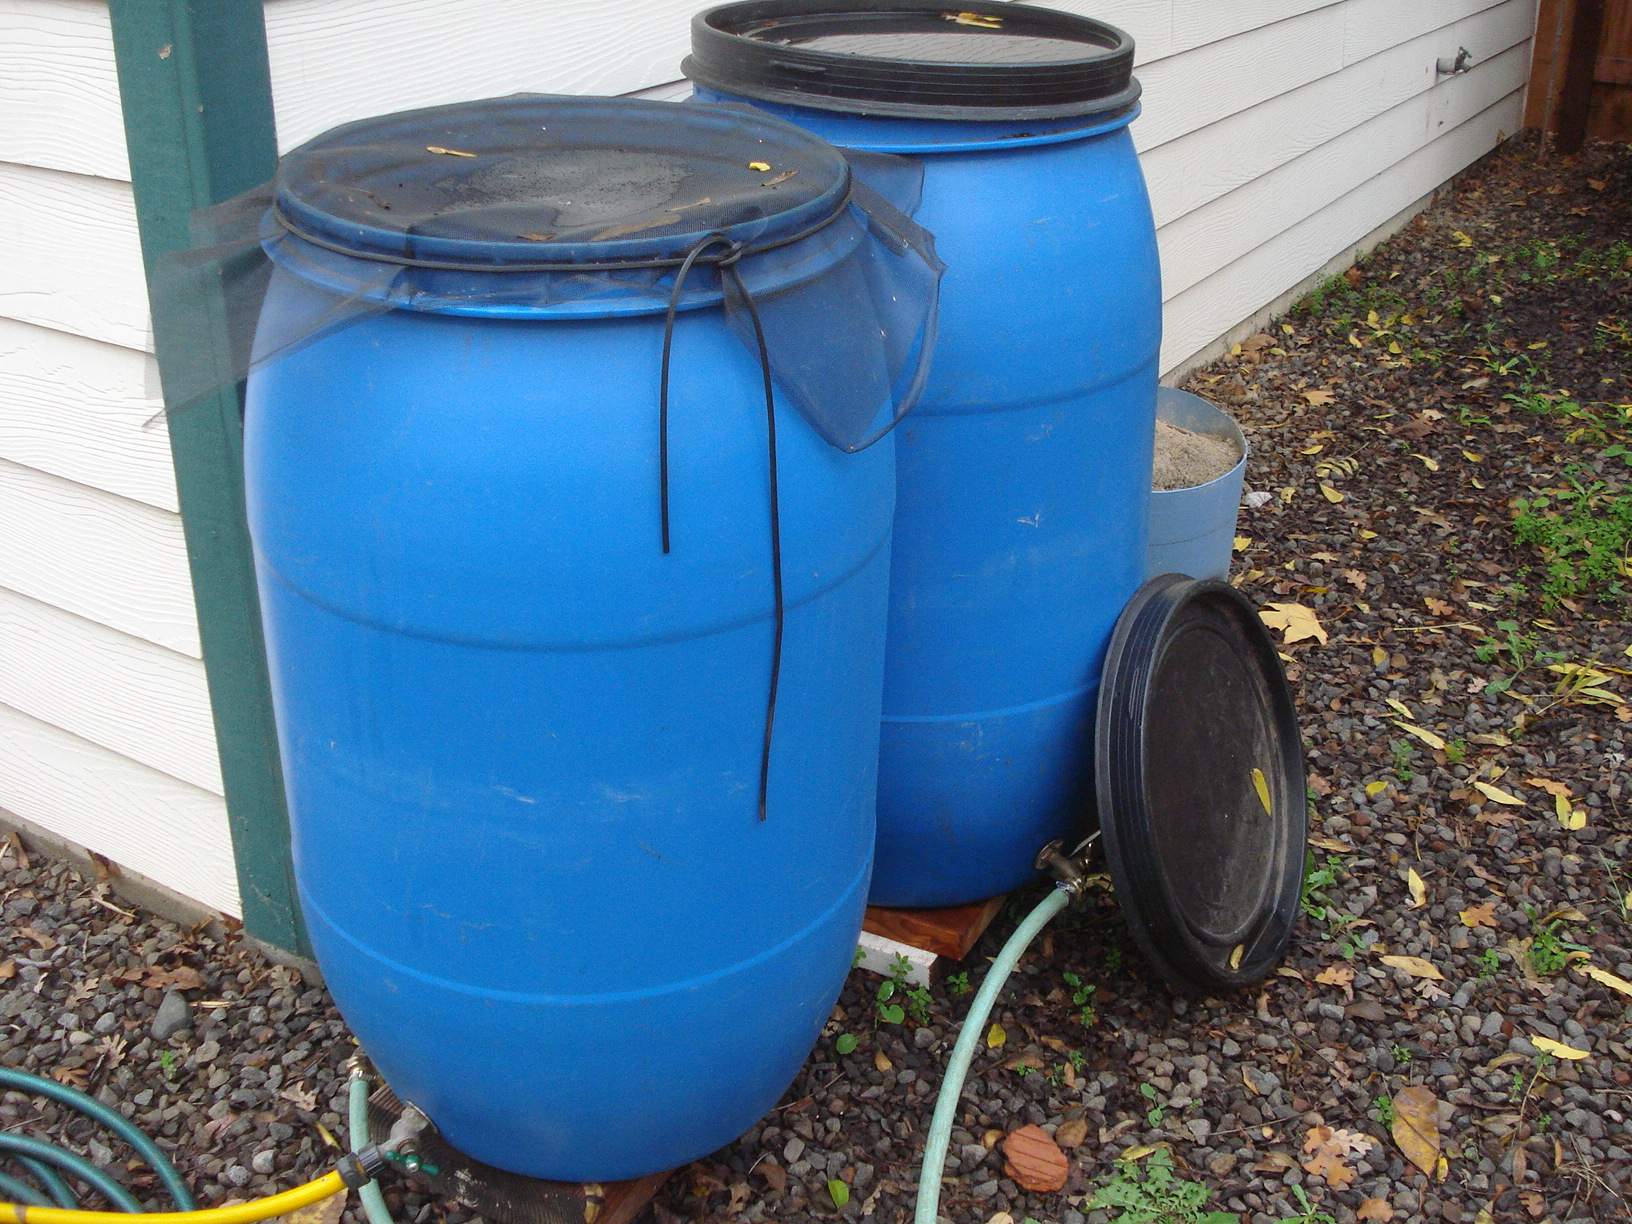 a longer rain gutter requires two barrels behind the house - Water Storage Barrels